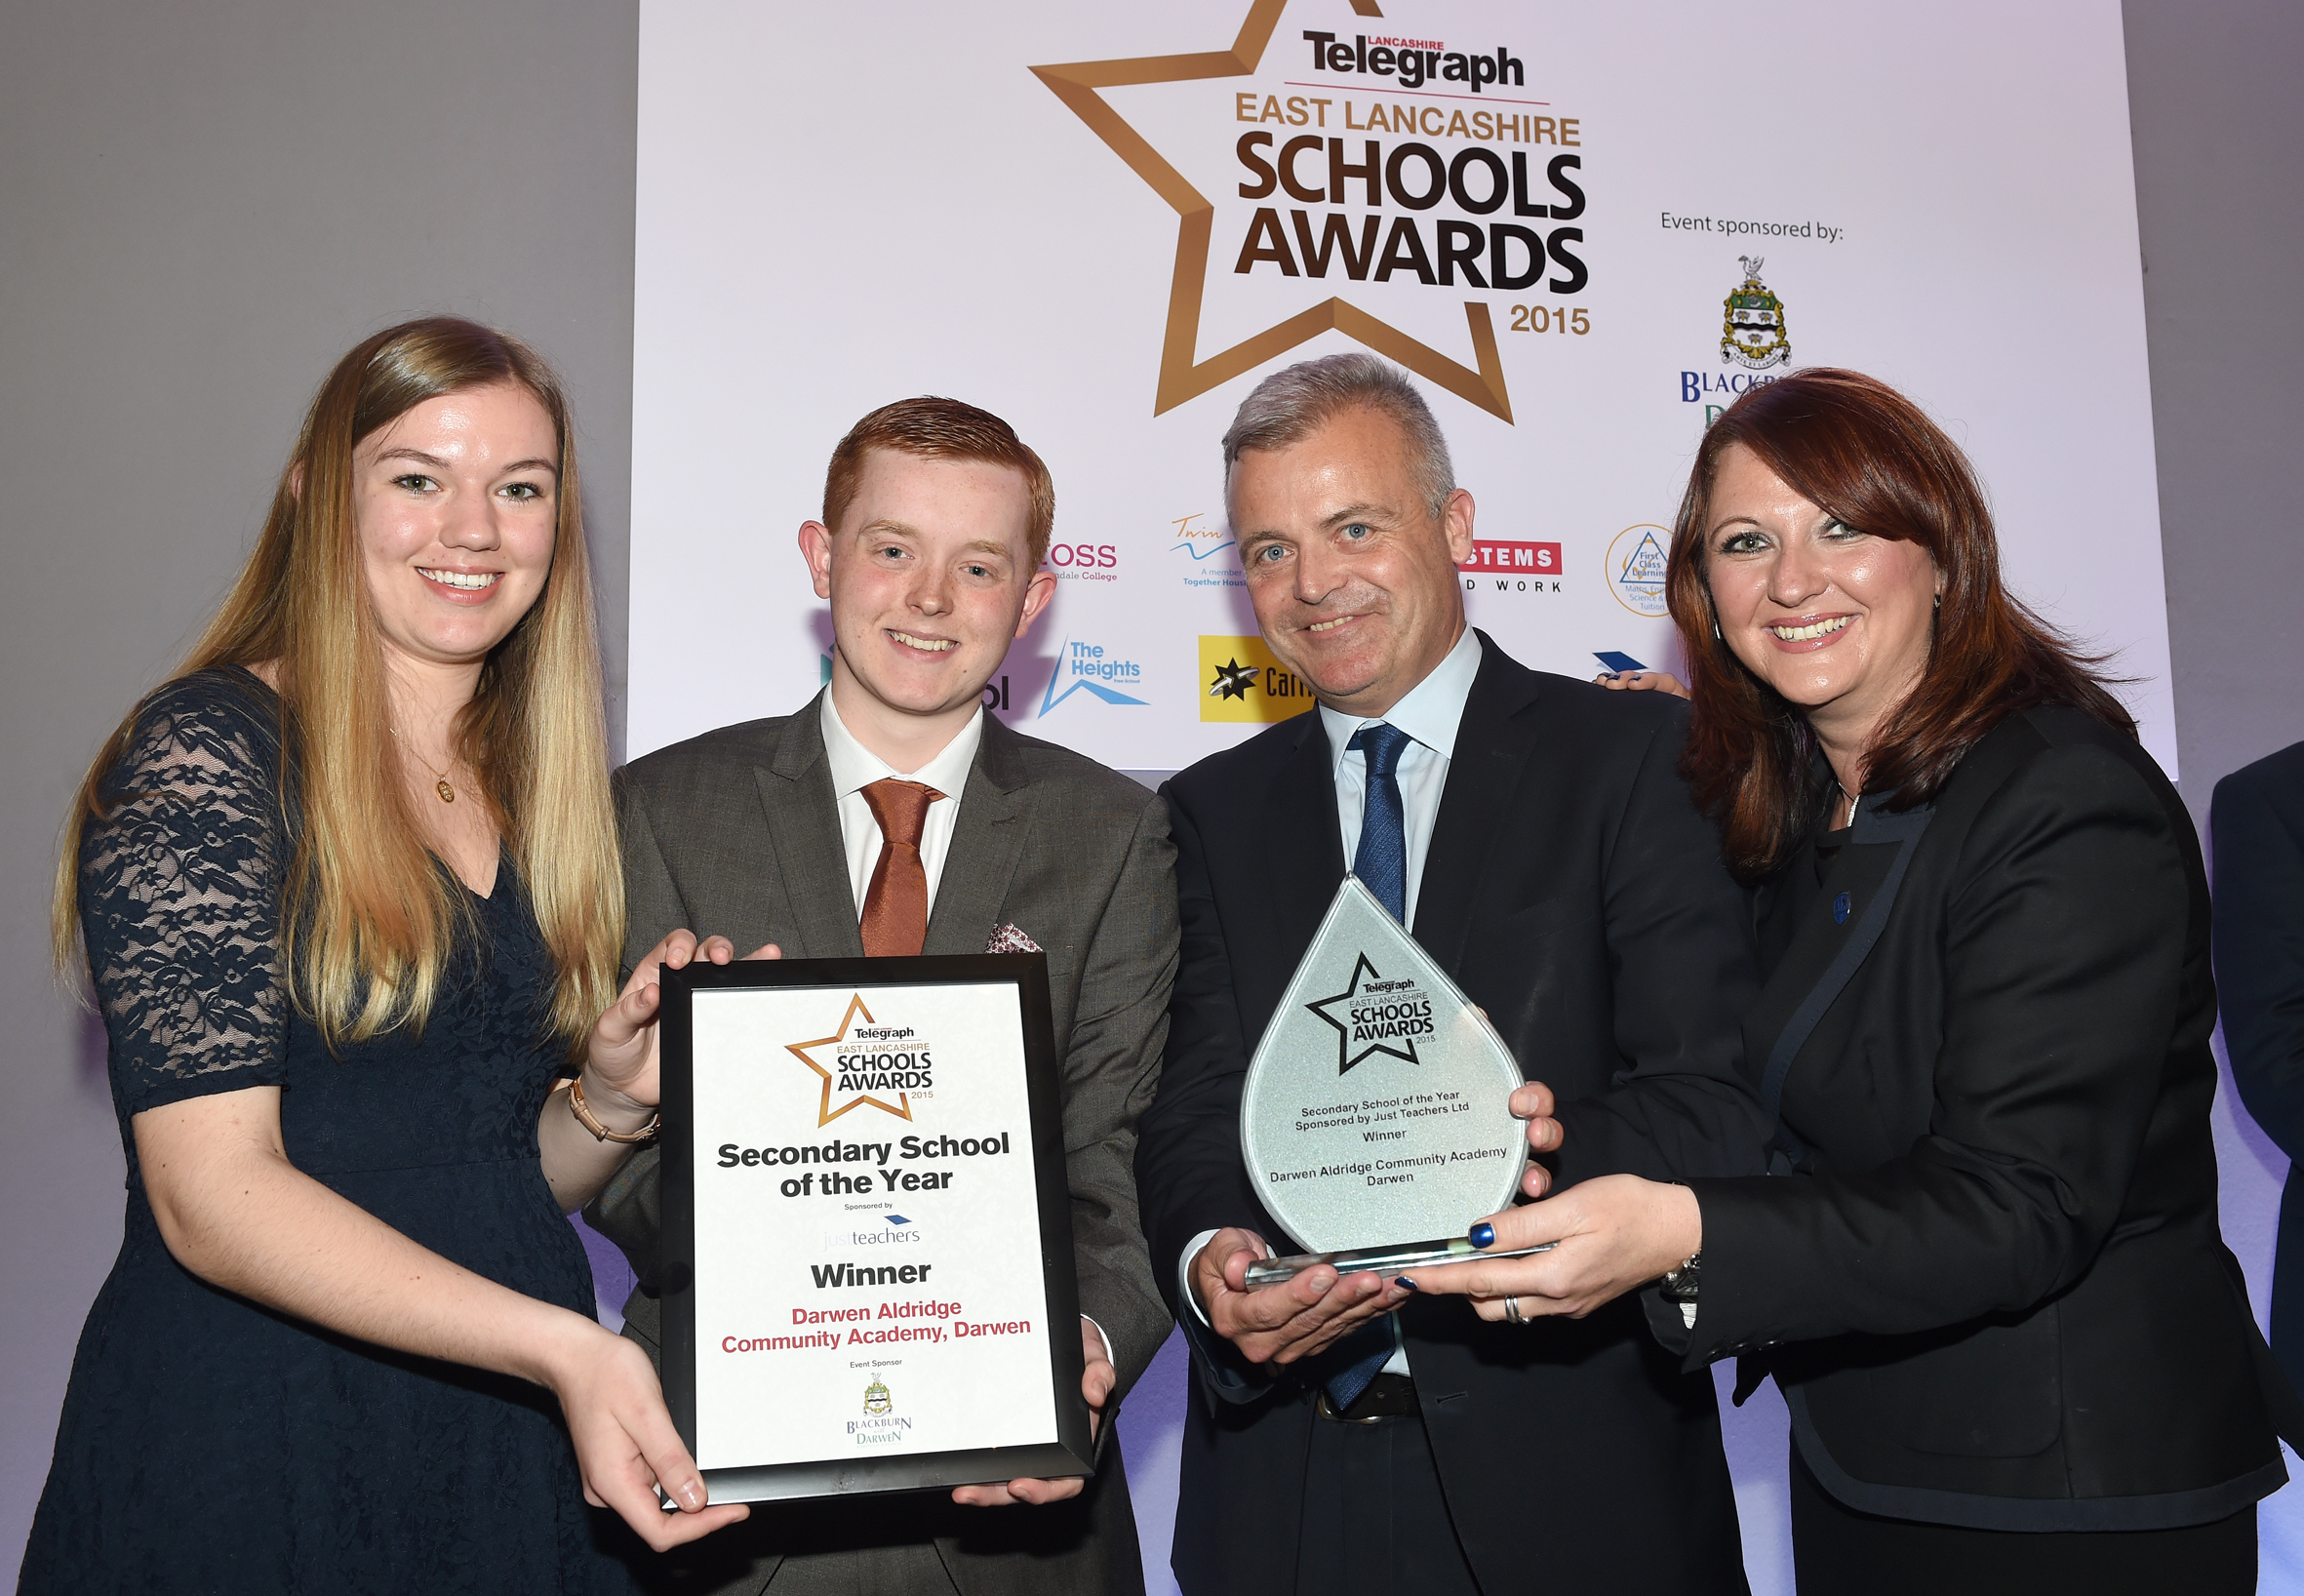 WINNING TEAM: Head girl Ella McLeod and Travis Frain, head boy, with principal Brendan Loughran and Michelle Billington, assistant principal and Secondary School of the Year Award